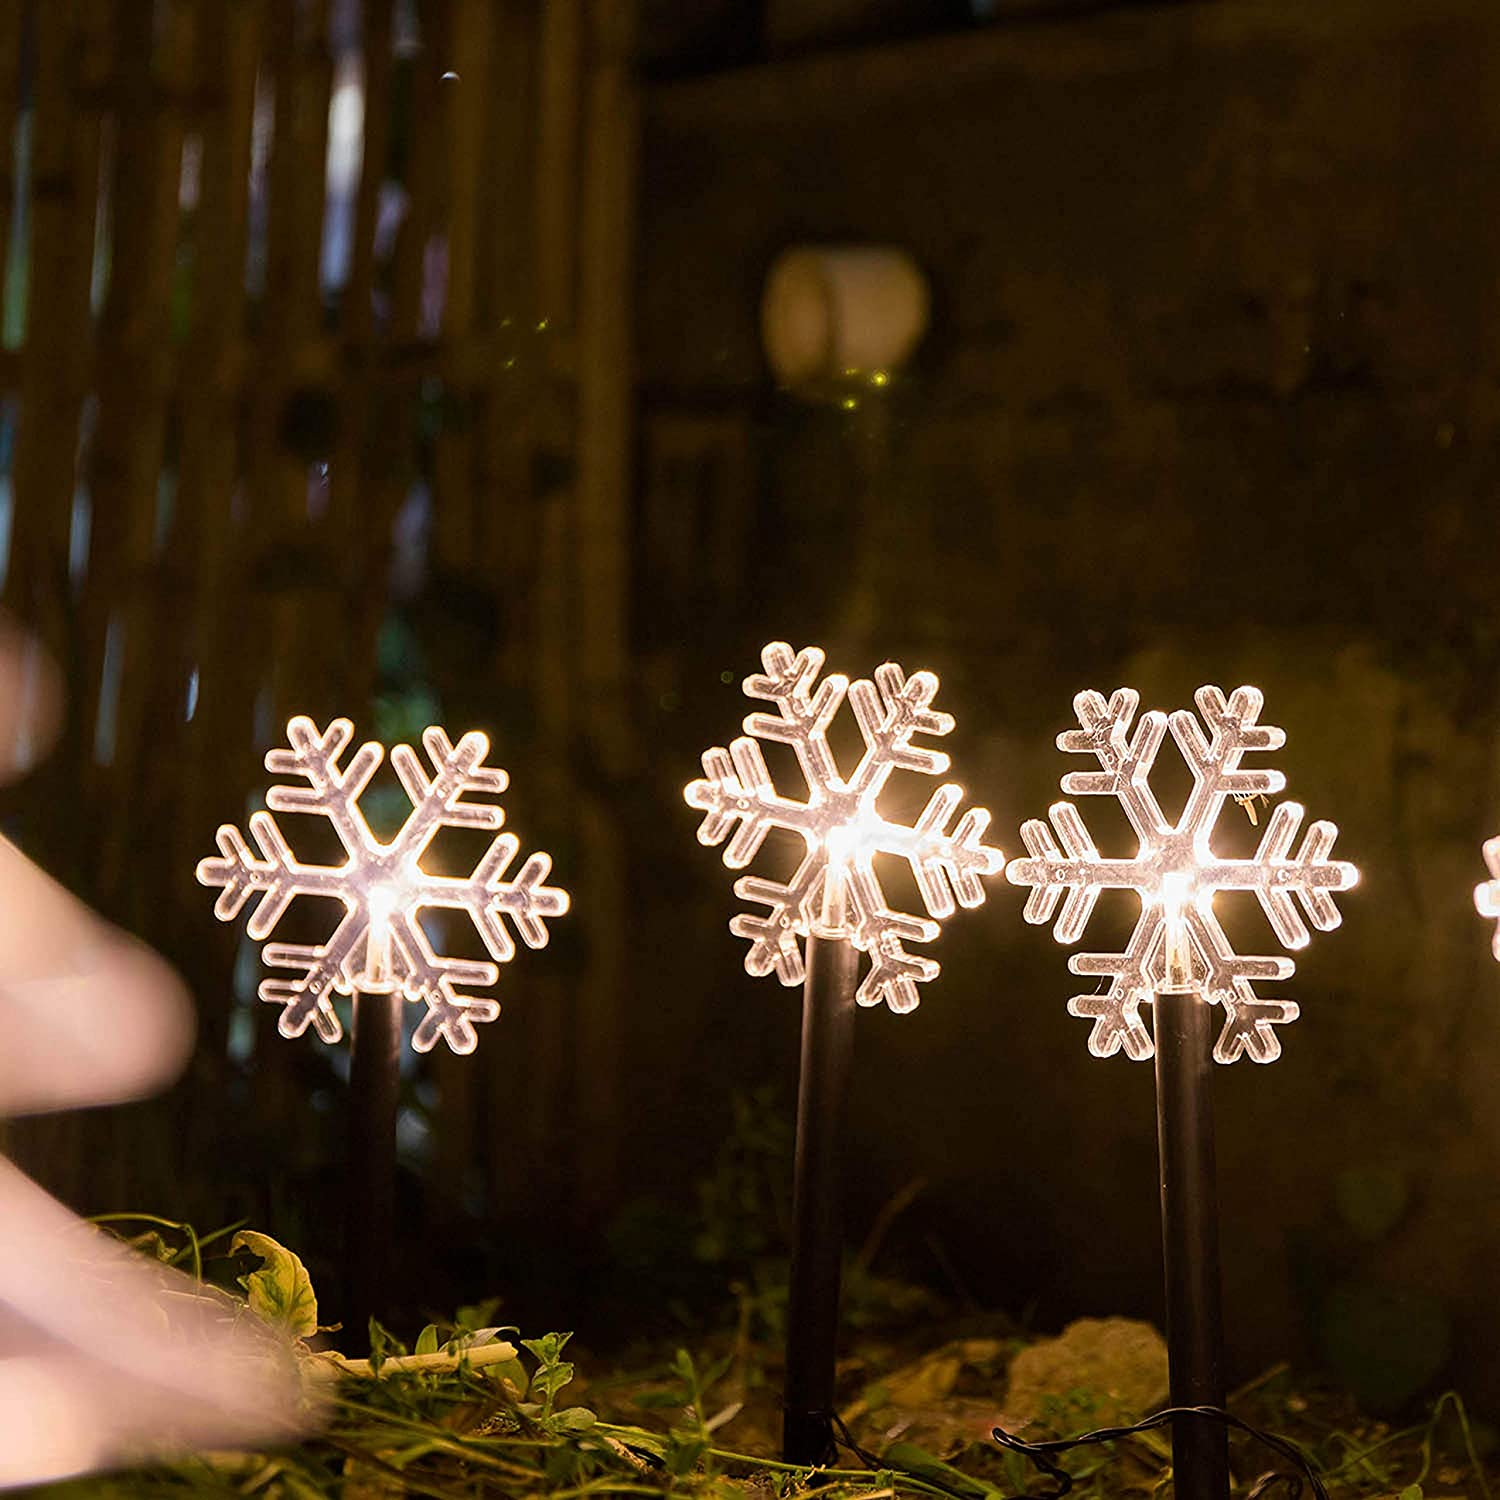 Christmas Garden Pathway Light Decorative Landscape Lighting Garden Path Light 5 Packs 14 Inches Battery Operated Warm White Led Sticks for Indoor and Outdoor Holiday Decoration (Snowflake)